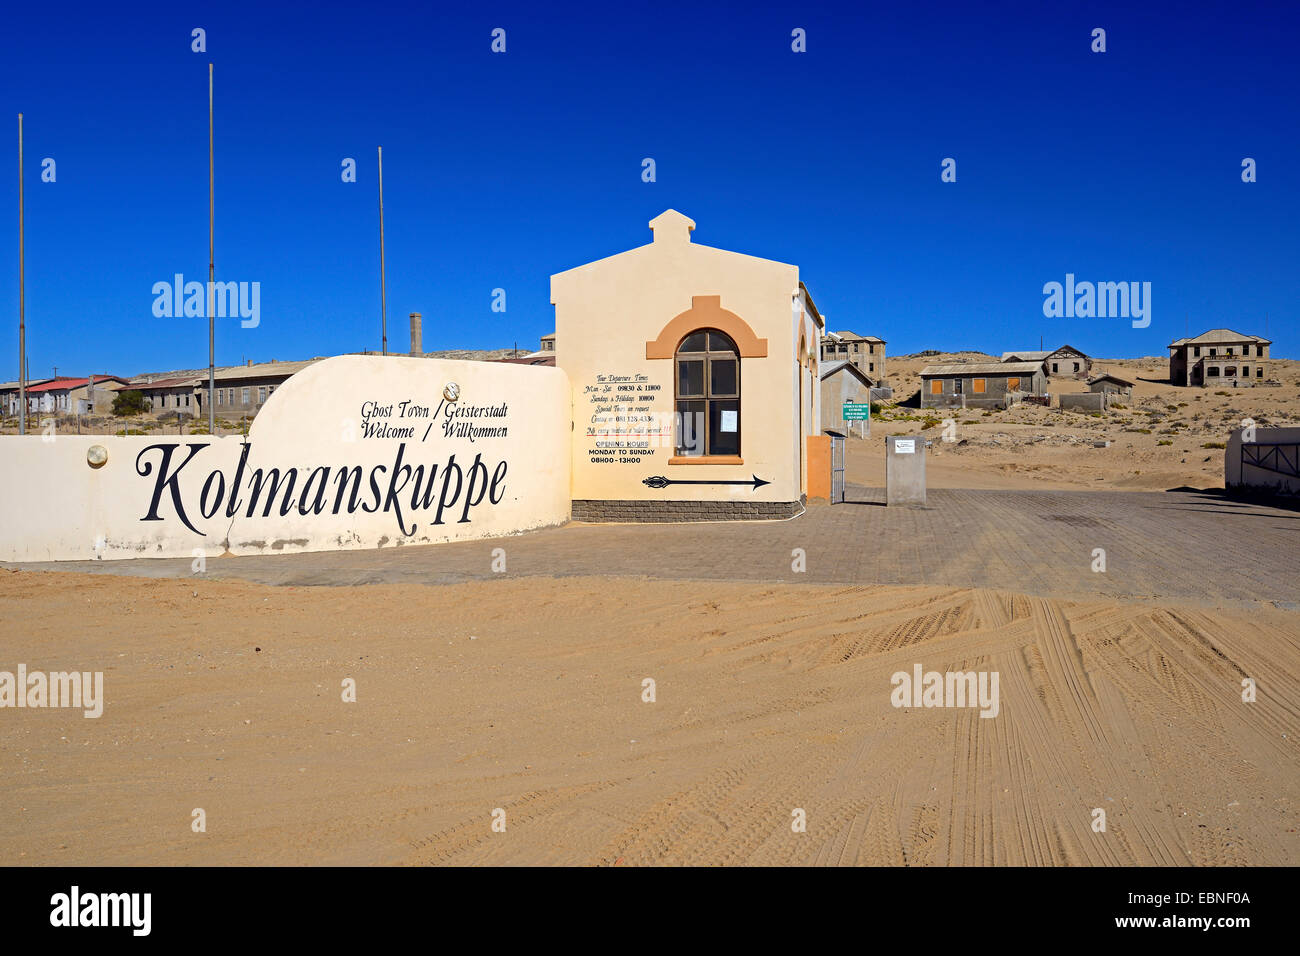 entrance of the ghosttown Kolmanskop, a former diamond mine near Luederitz, Namibia, Kolmanskop - Stock Image